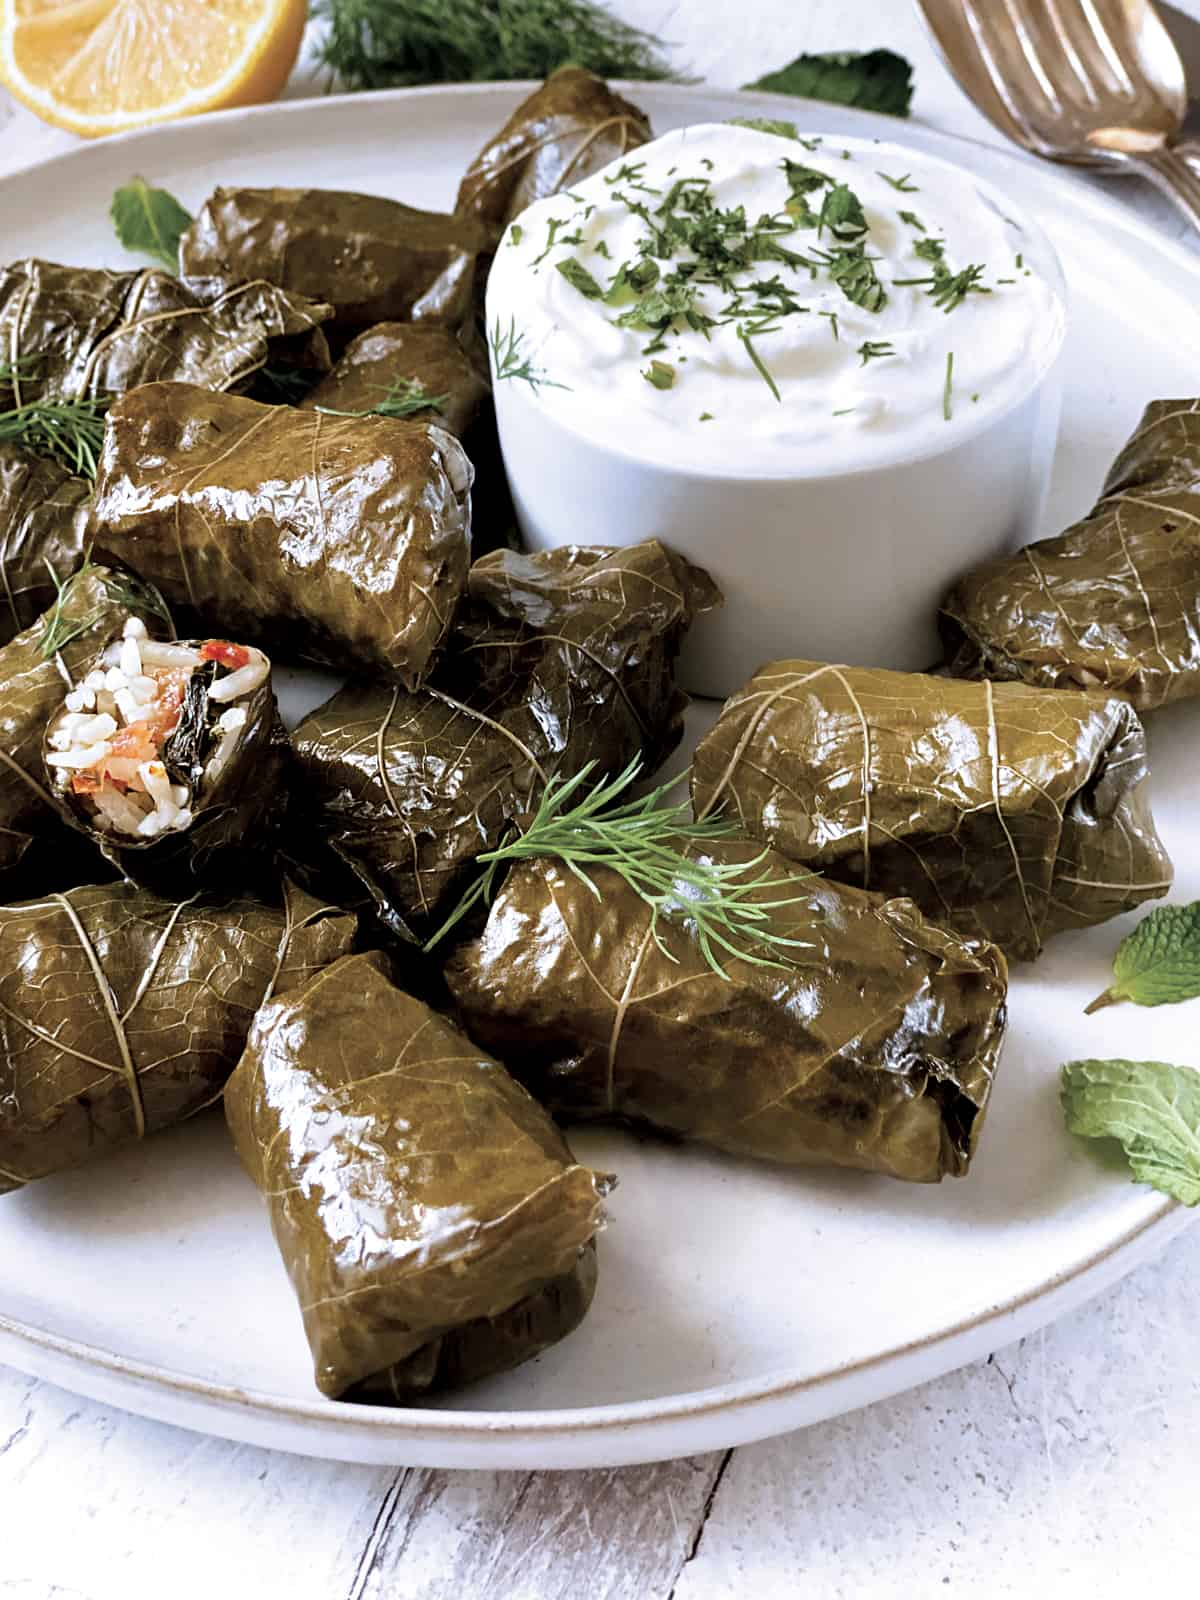 A plate with dolmades, and a bowl of yogurt sauce. Fresh dill leaves at the from, a cloth napkin and utensils at the back.